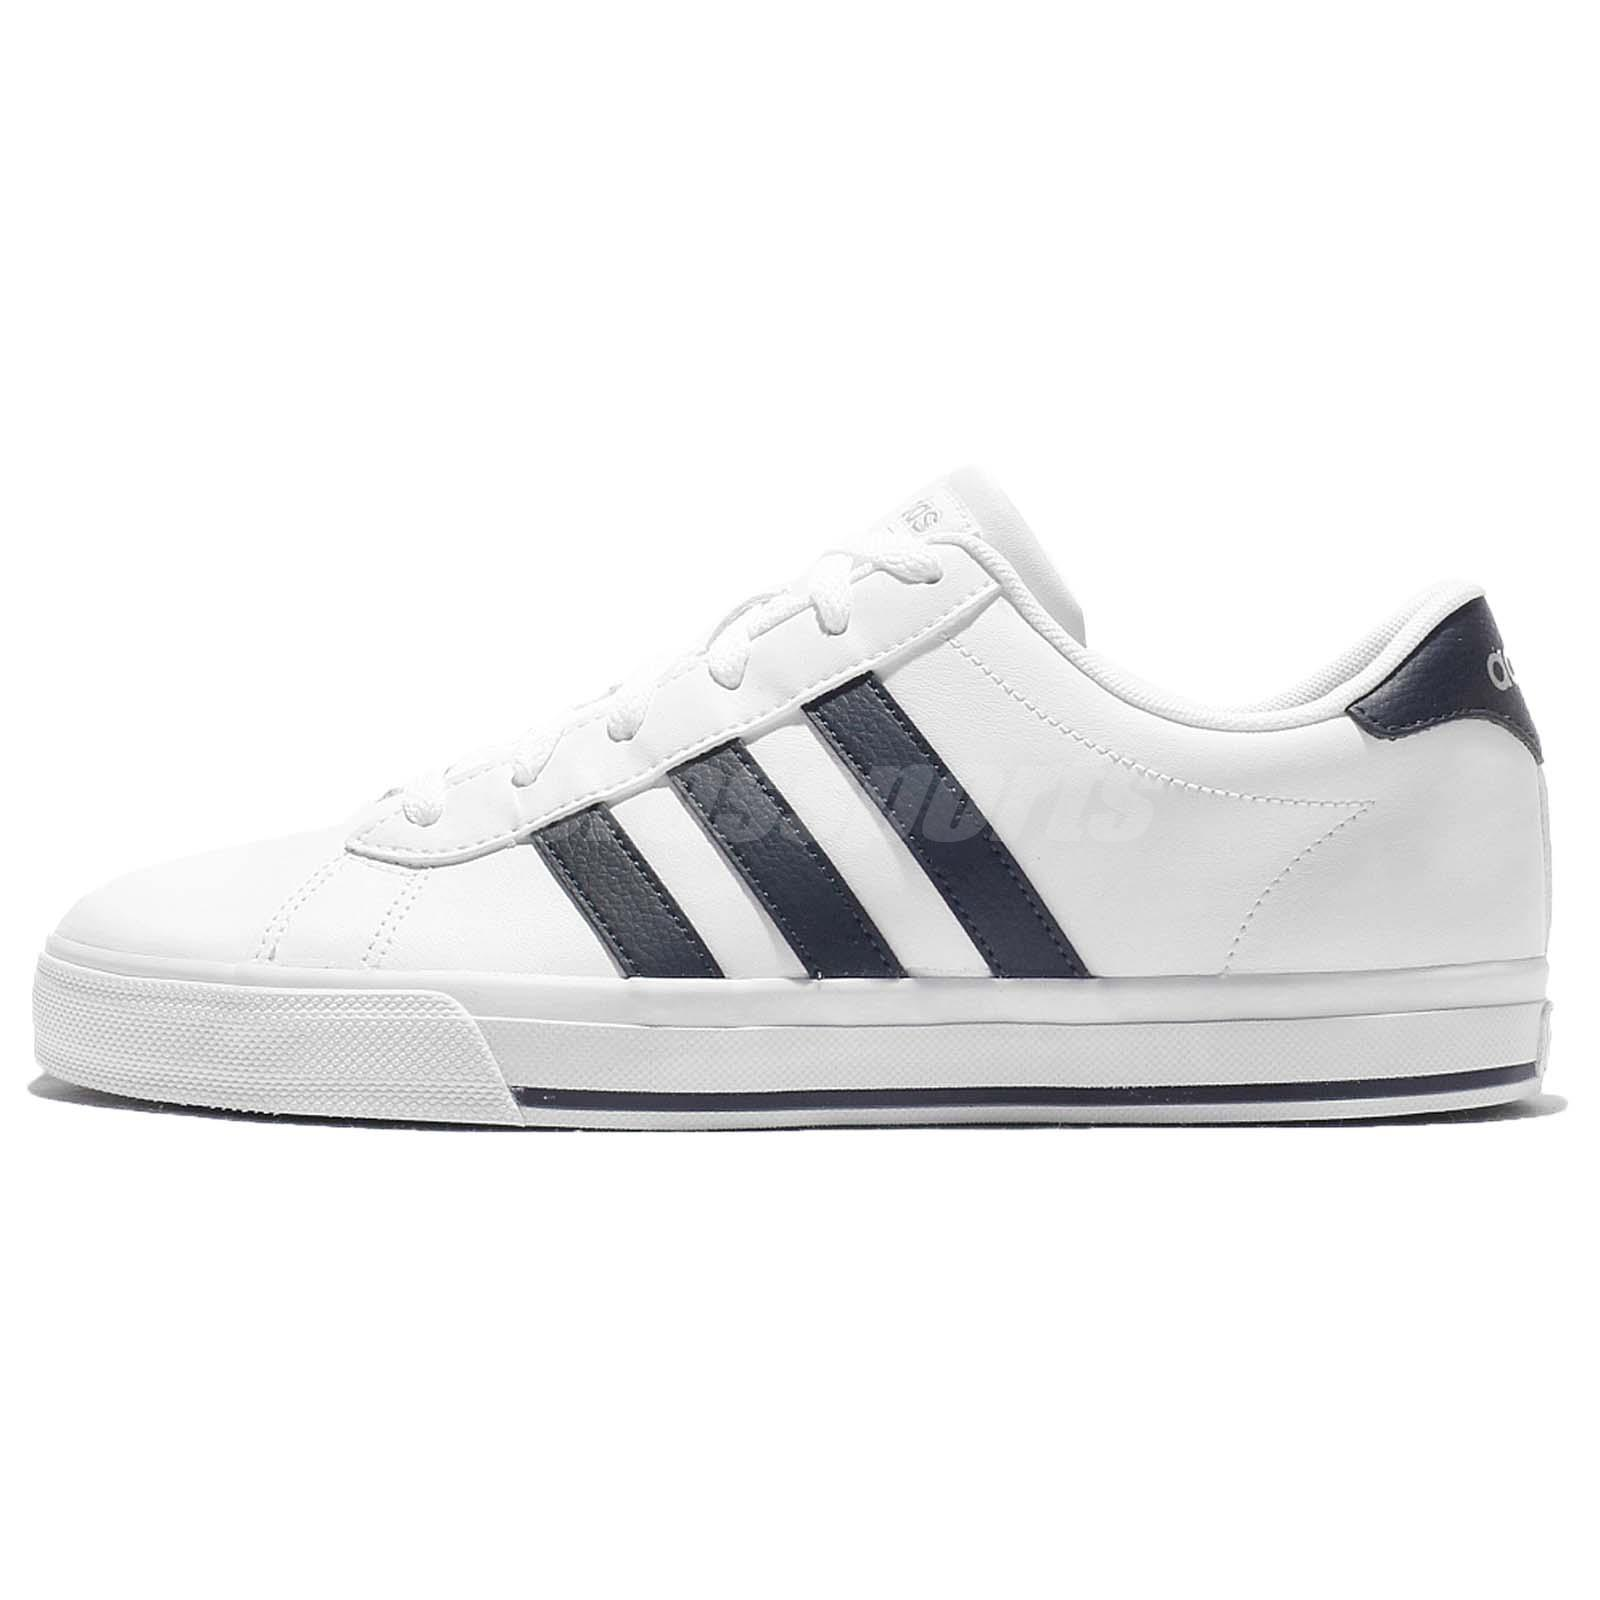 adidas neo label daily mens casual shoes sneakers pick 1. Black Bedroom Furniture Sets. Home Design Ideas